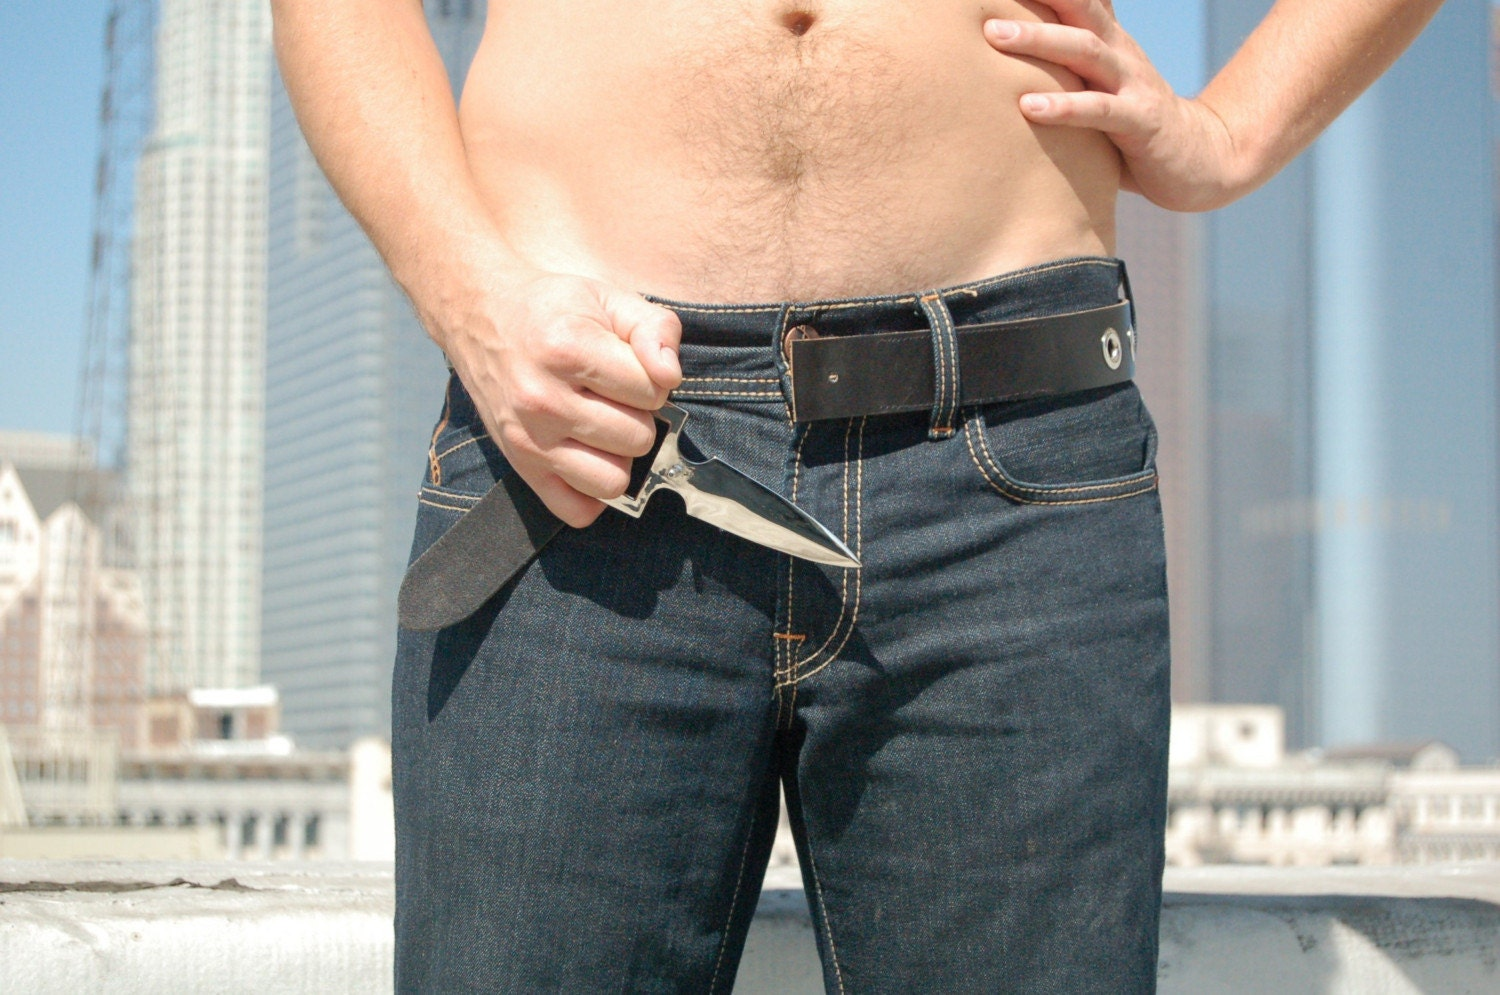 The most dangerous thing to put in your pants